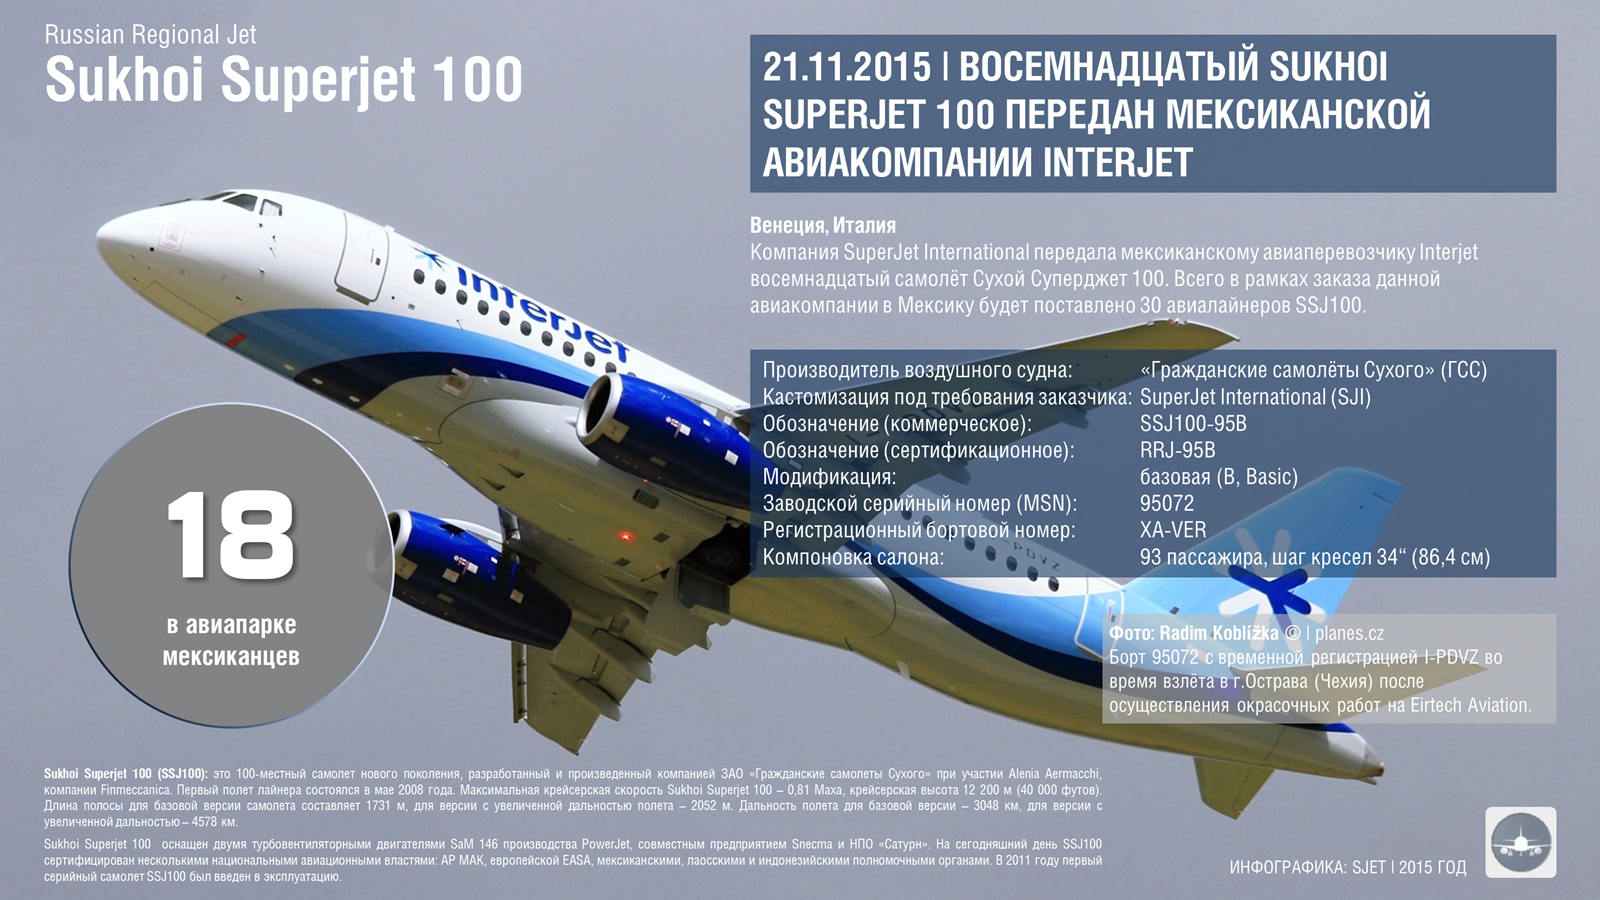 Sukhoi%20Superjet%20SSJ100%20RRJ95%20Interjet%20Mexico%20Airlines.png